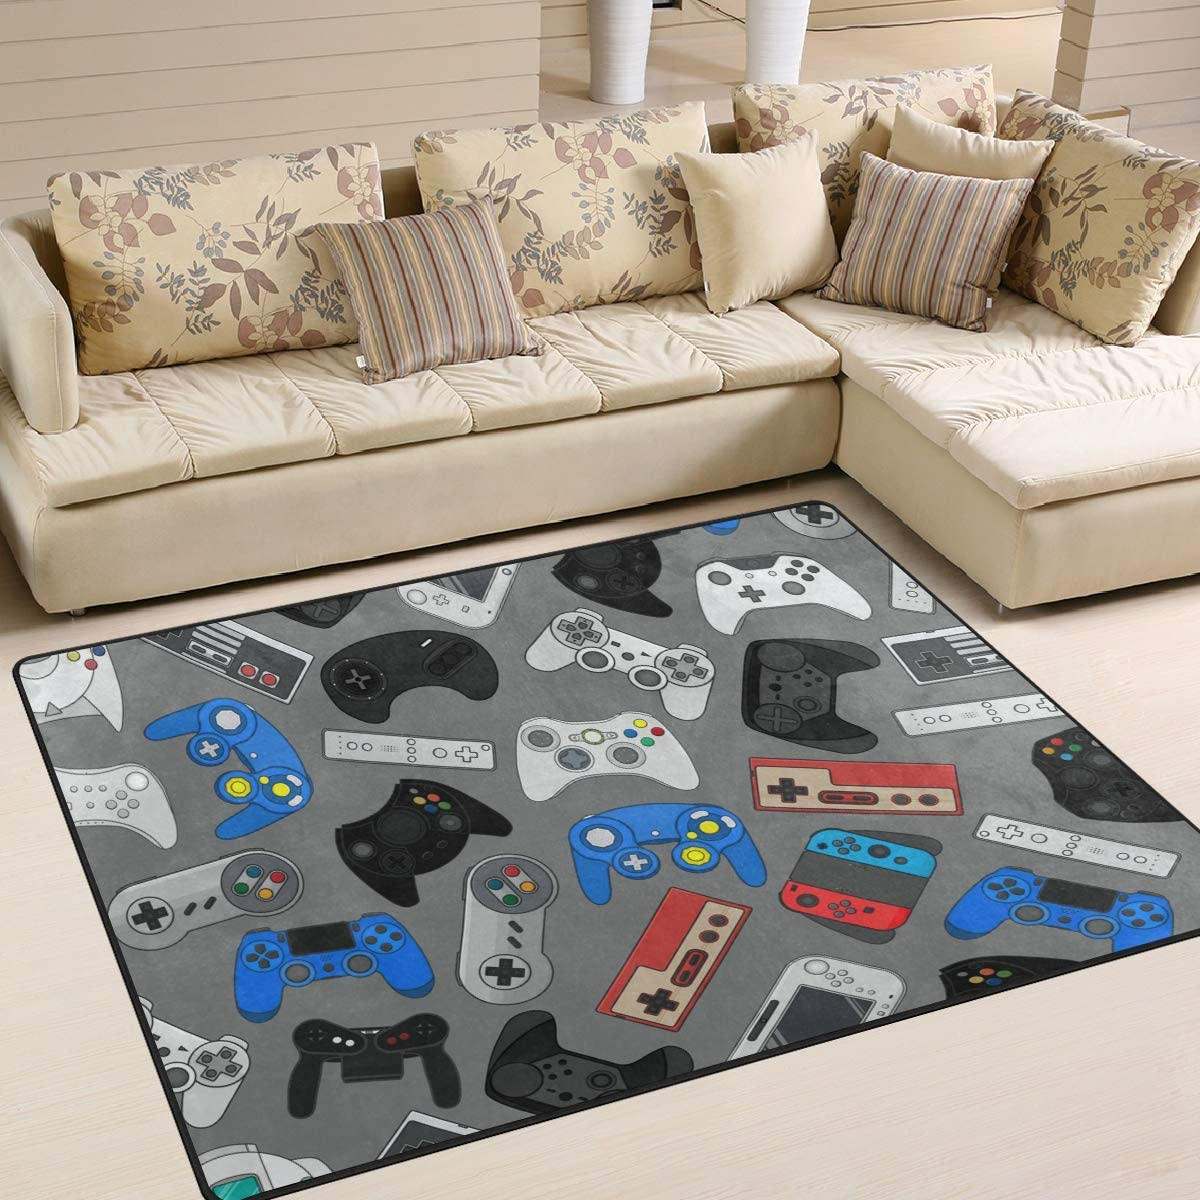 FOLPPLY Video Game Controller Toy Area Rug Non-Slip Pattern Surprise Max 80% OFF price Car